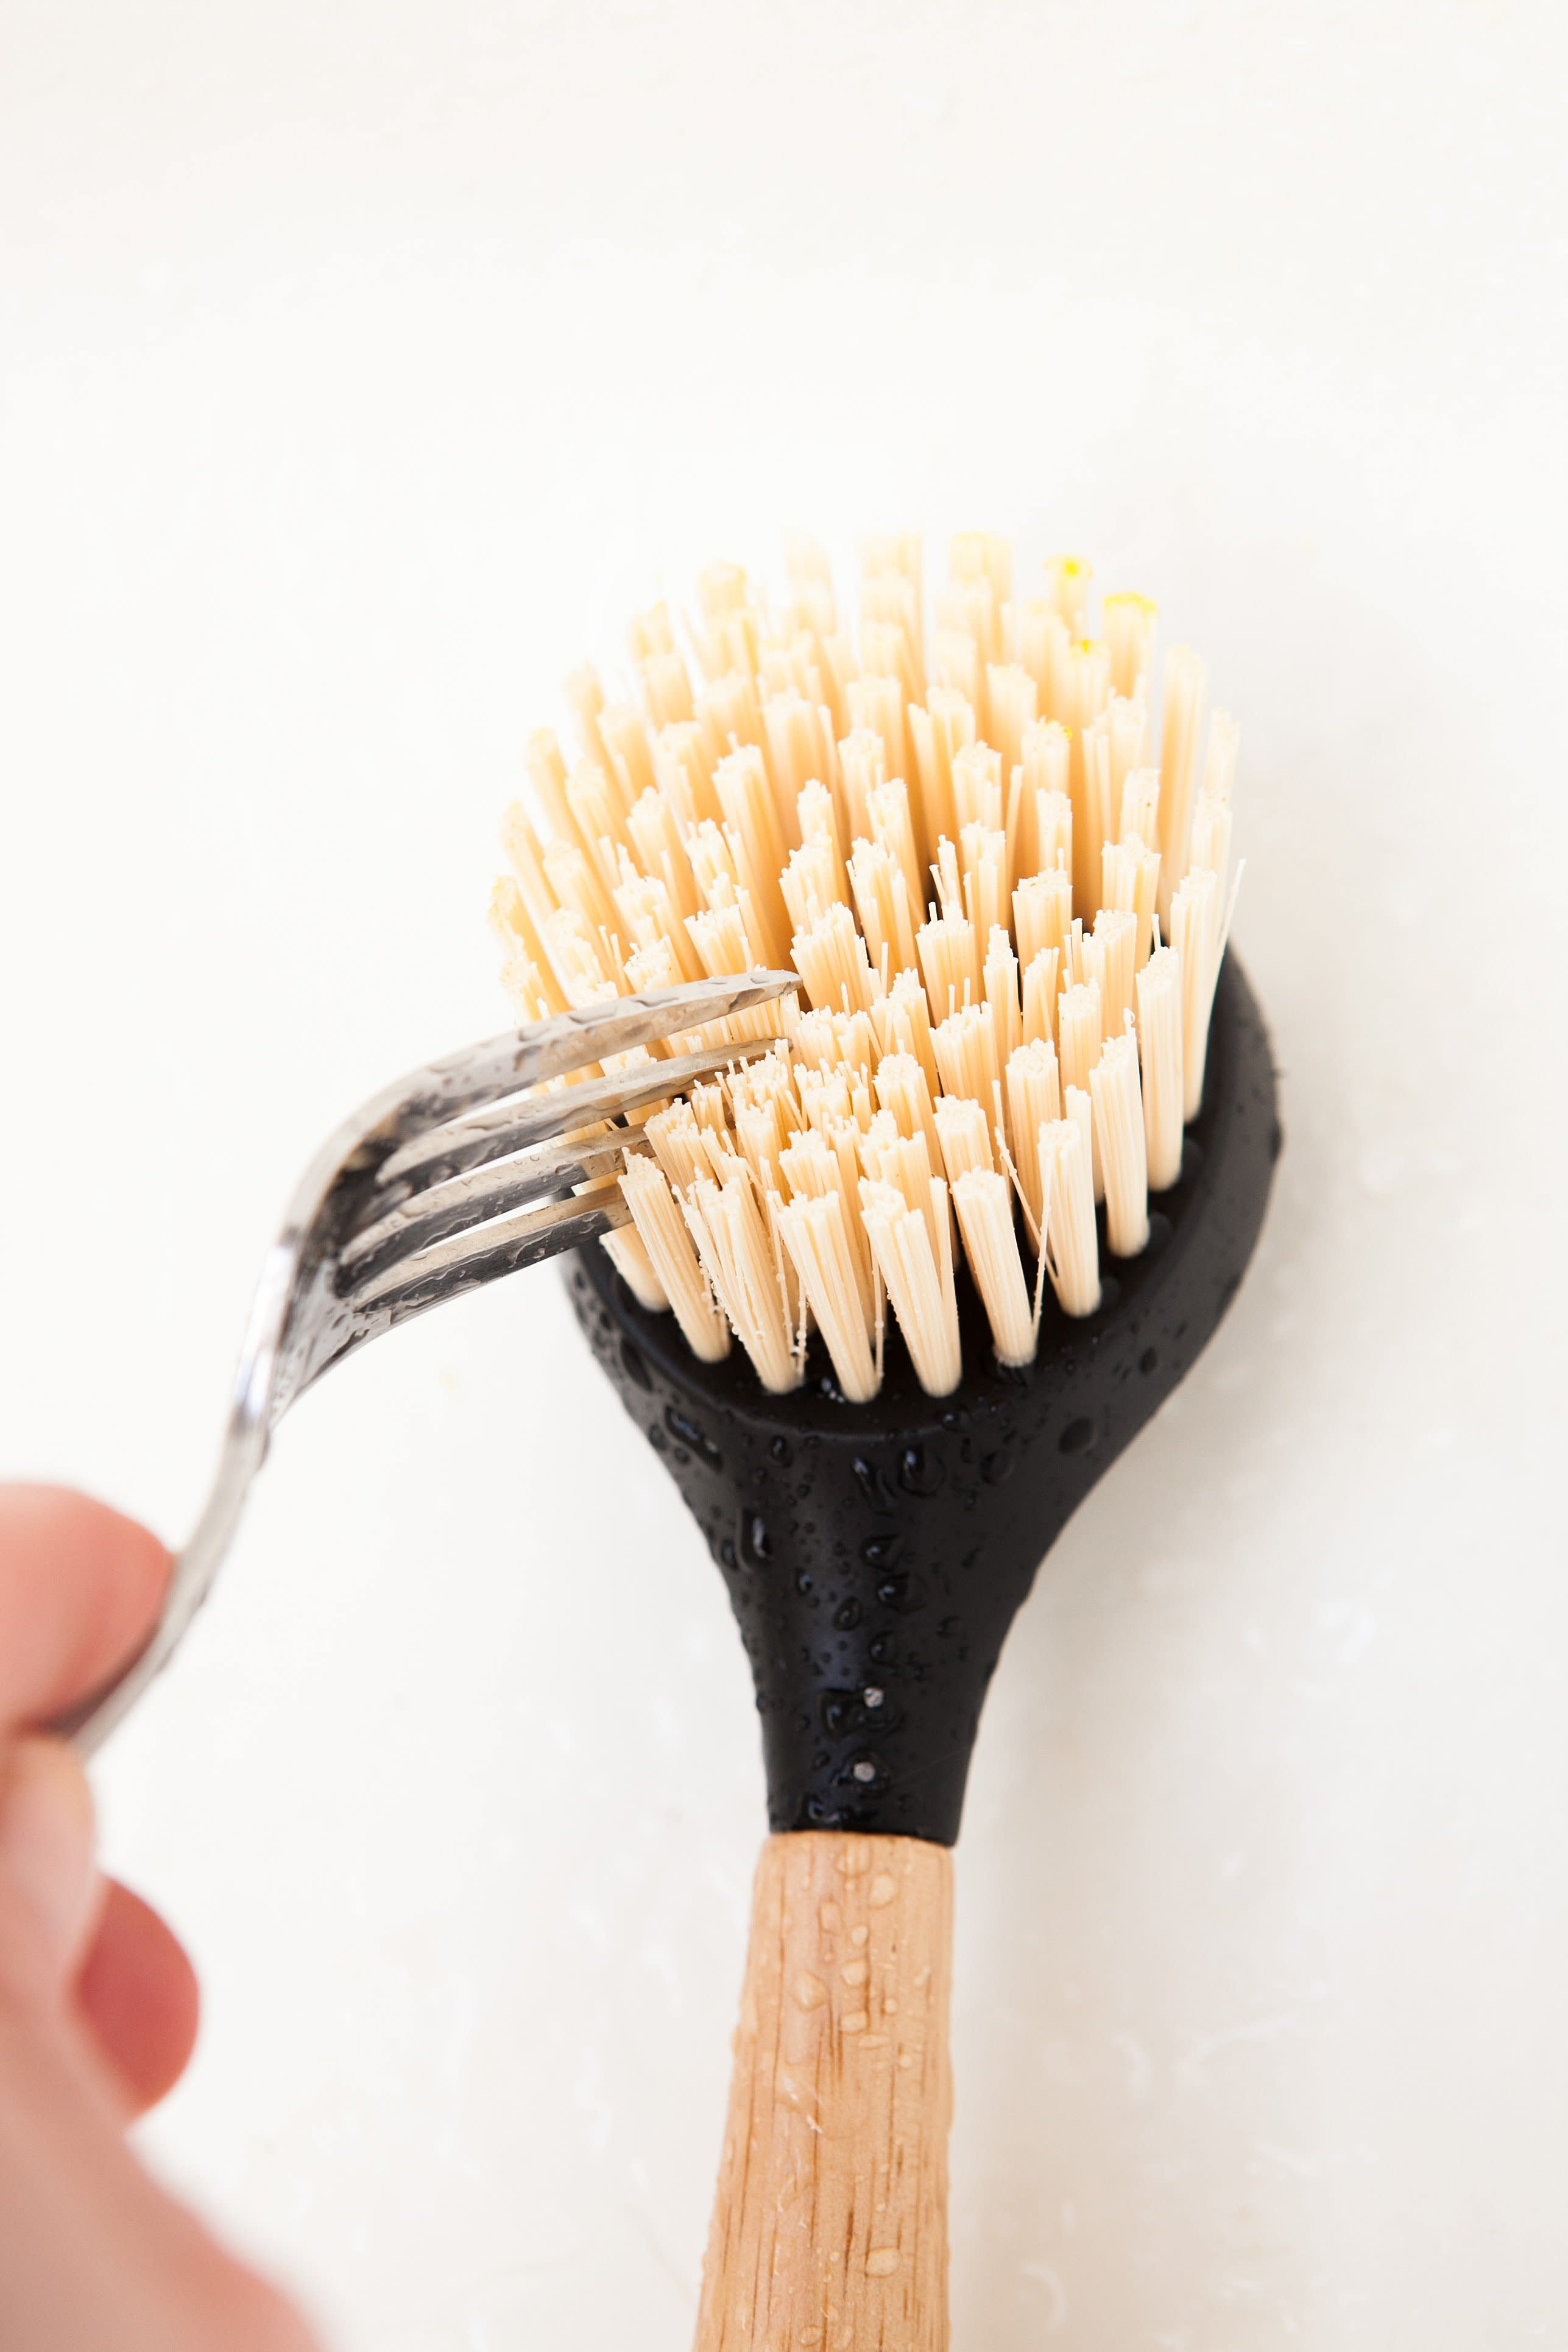 How To Clean and Disinfect a Dish Brush | Kitchn